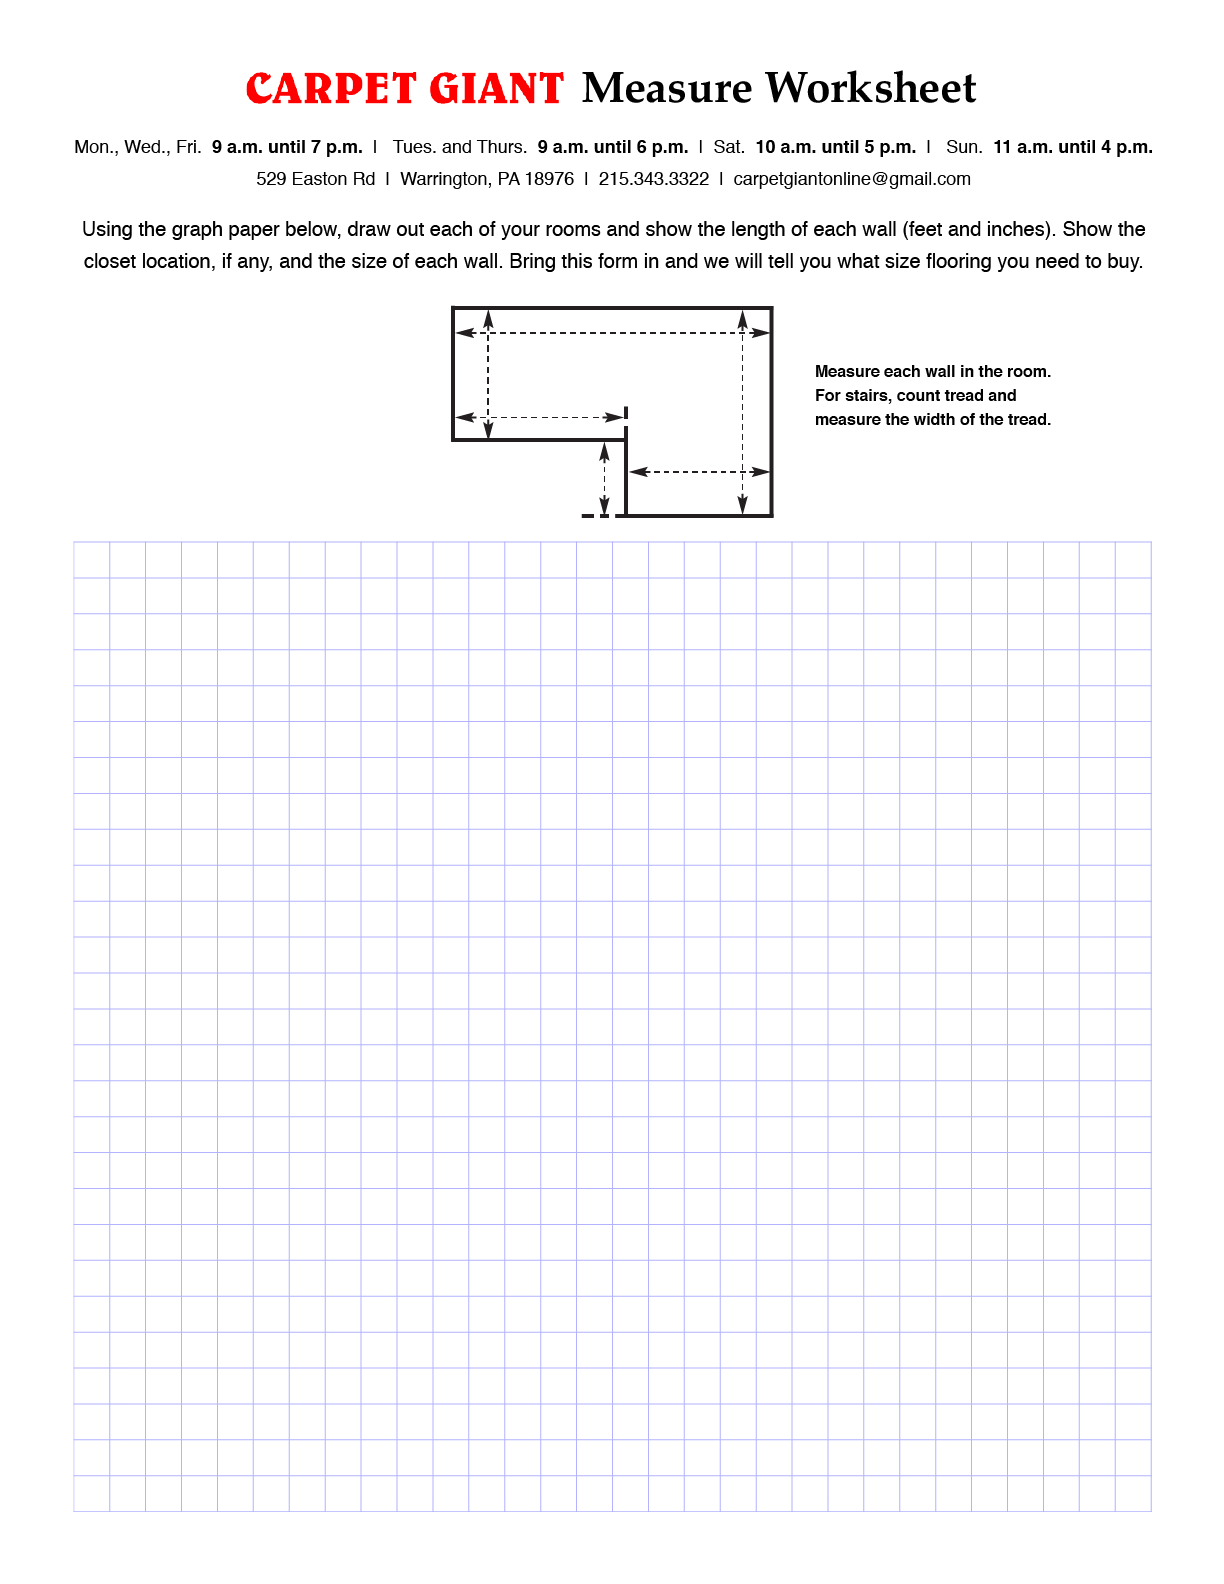 How To Measure Carpet Amp Remnant Giant Inc